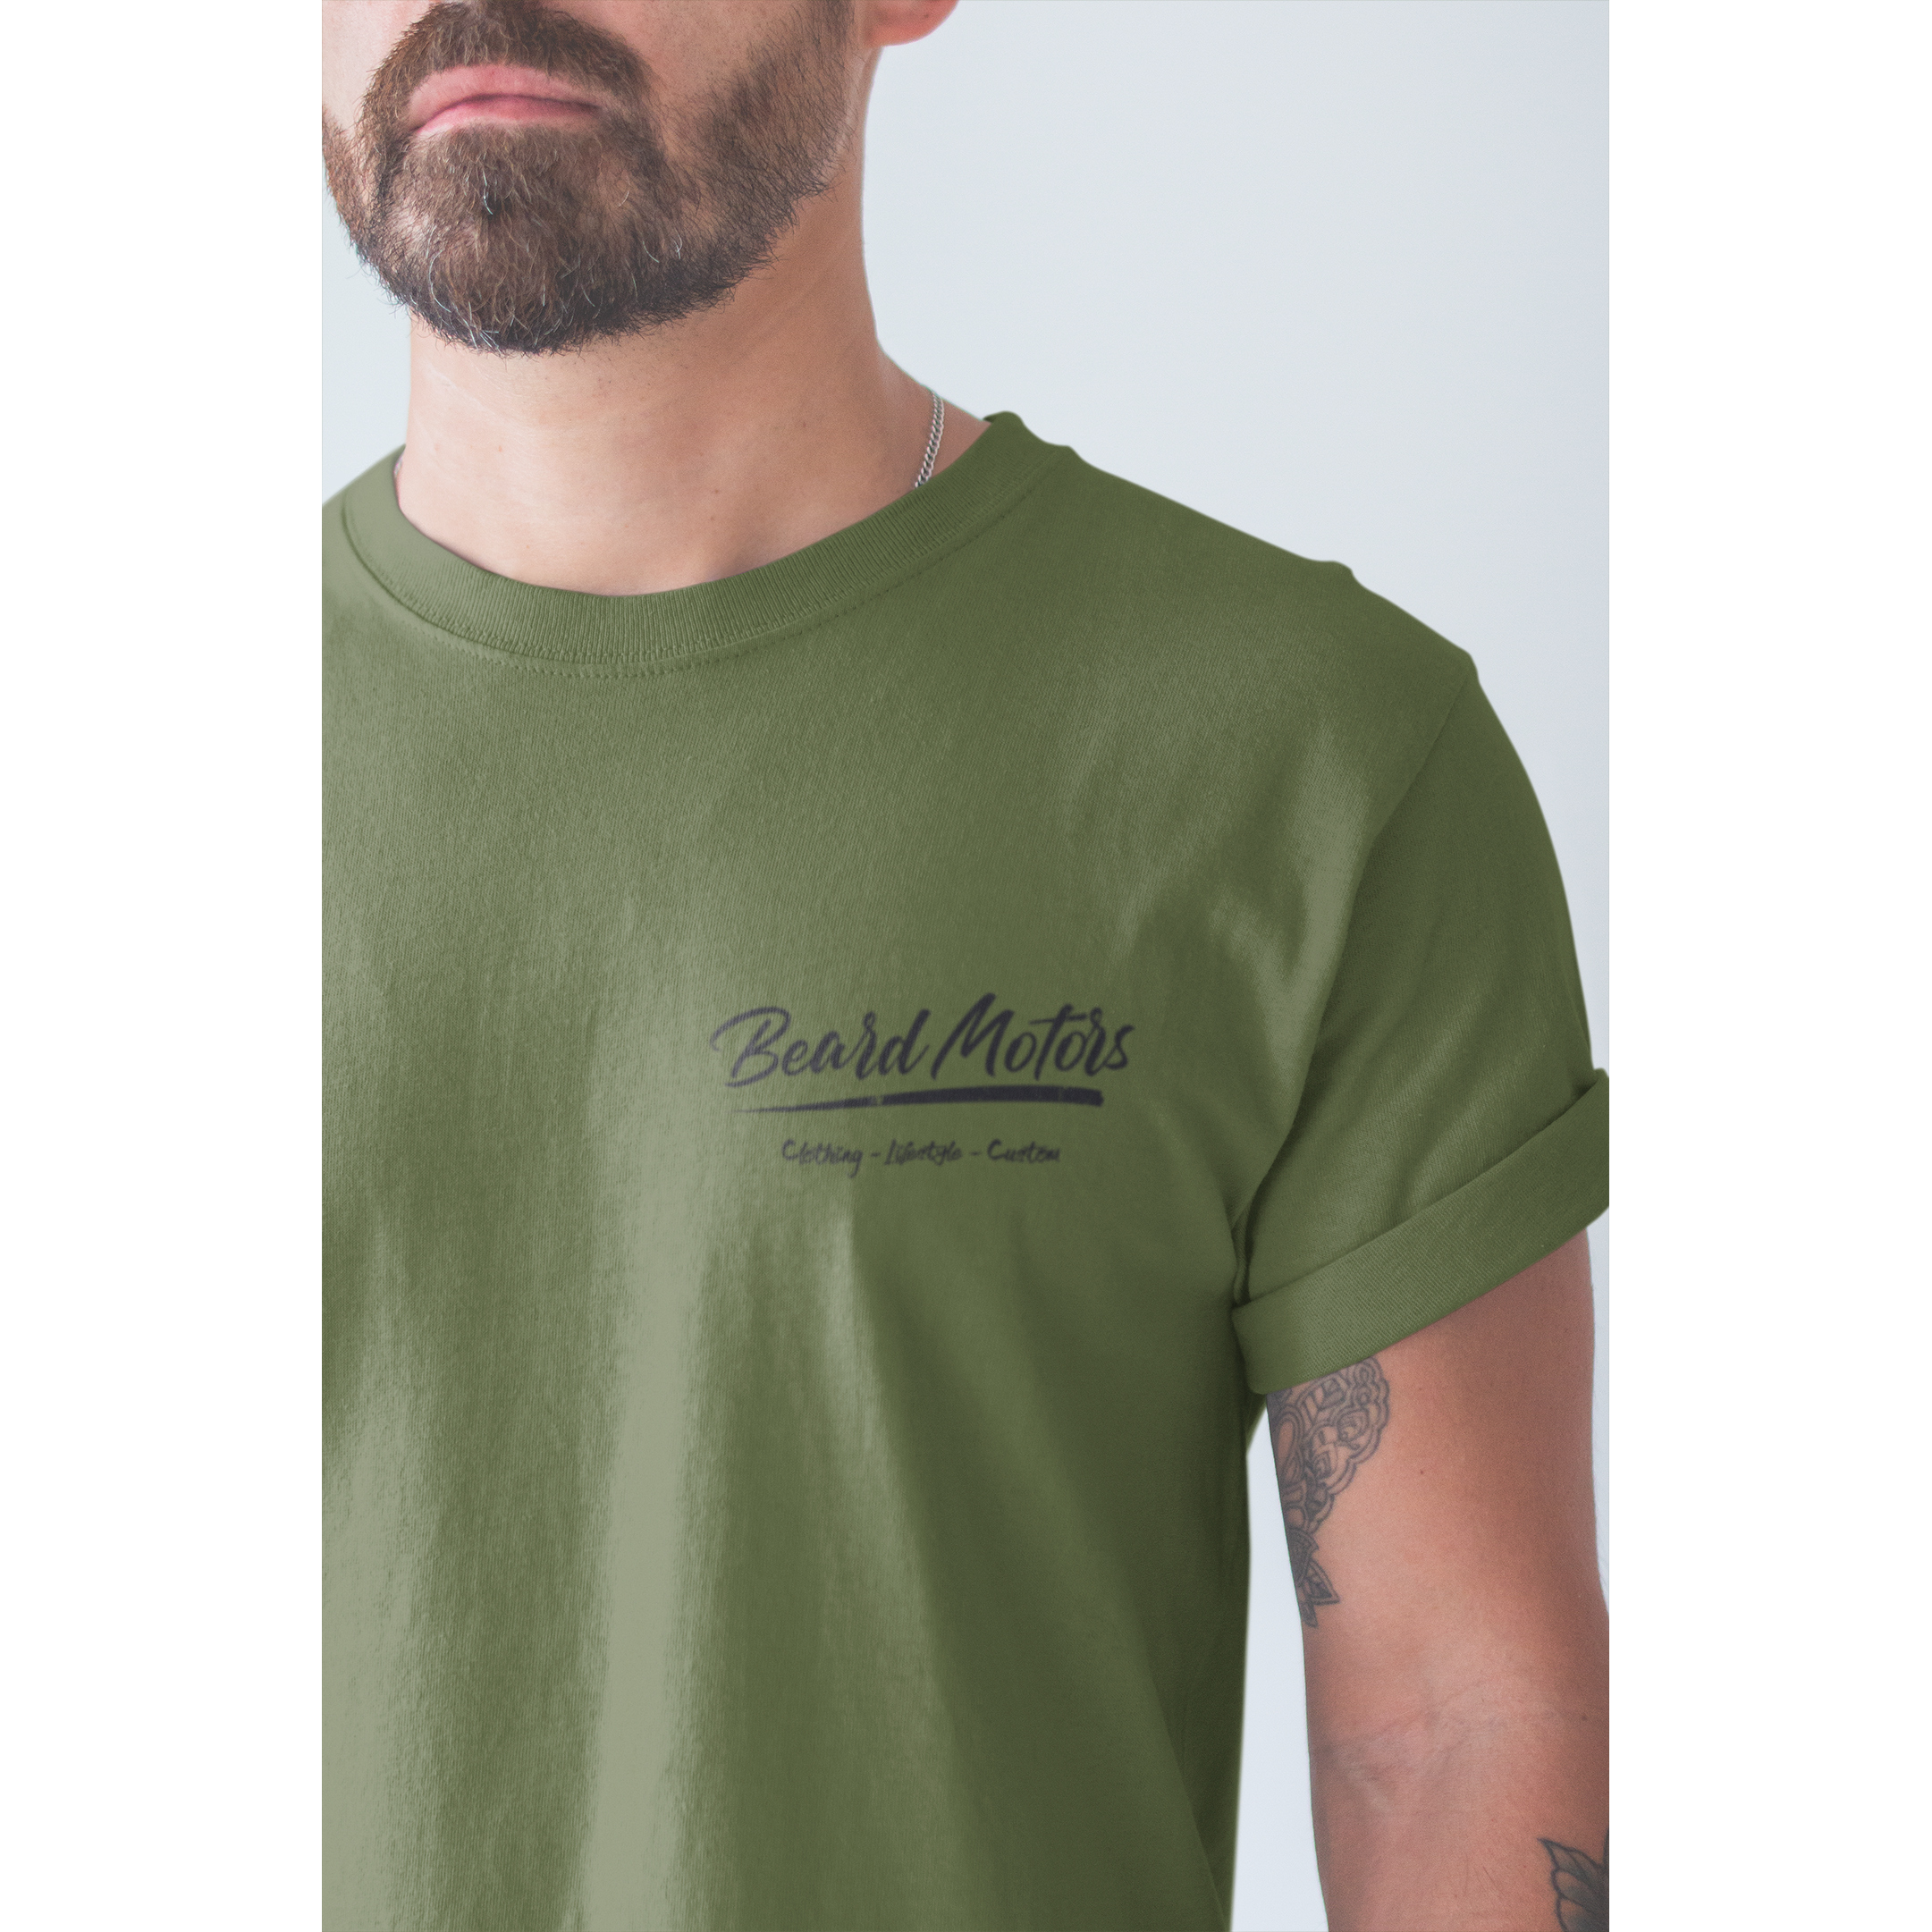 Beard Motors T-Shirt Logo Grunge embroided olive - Beard Motors